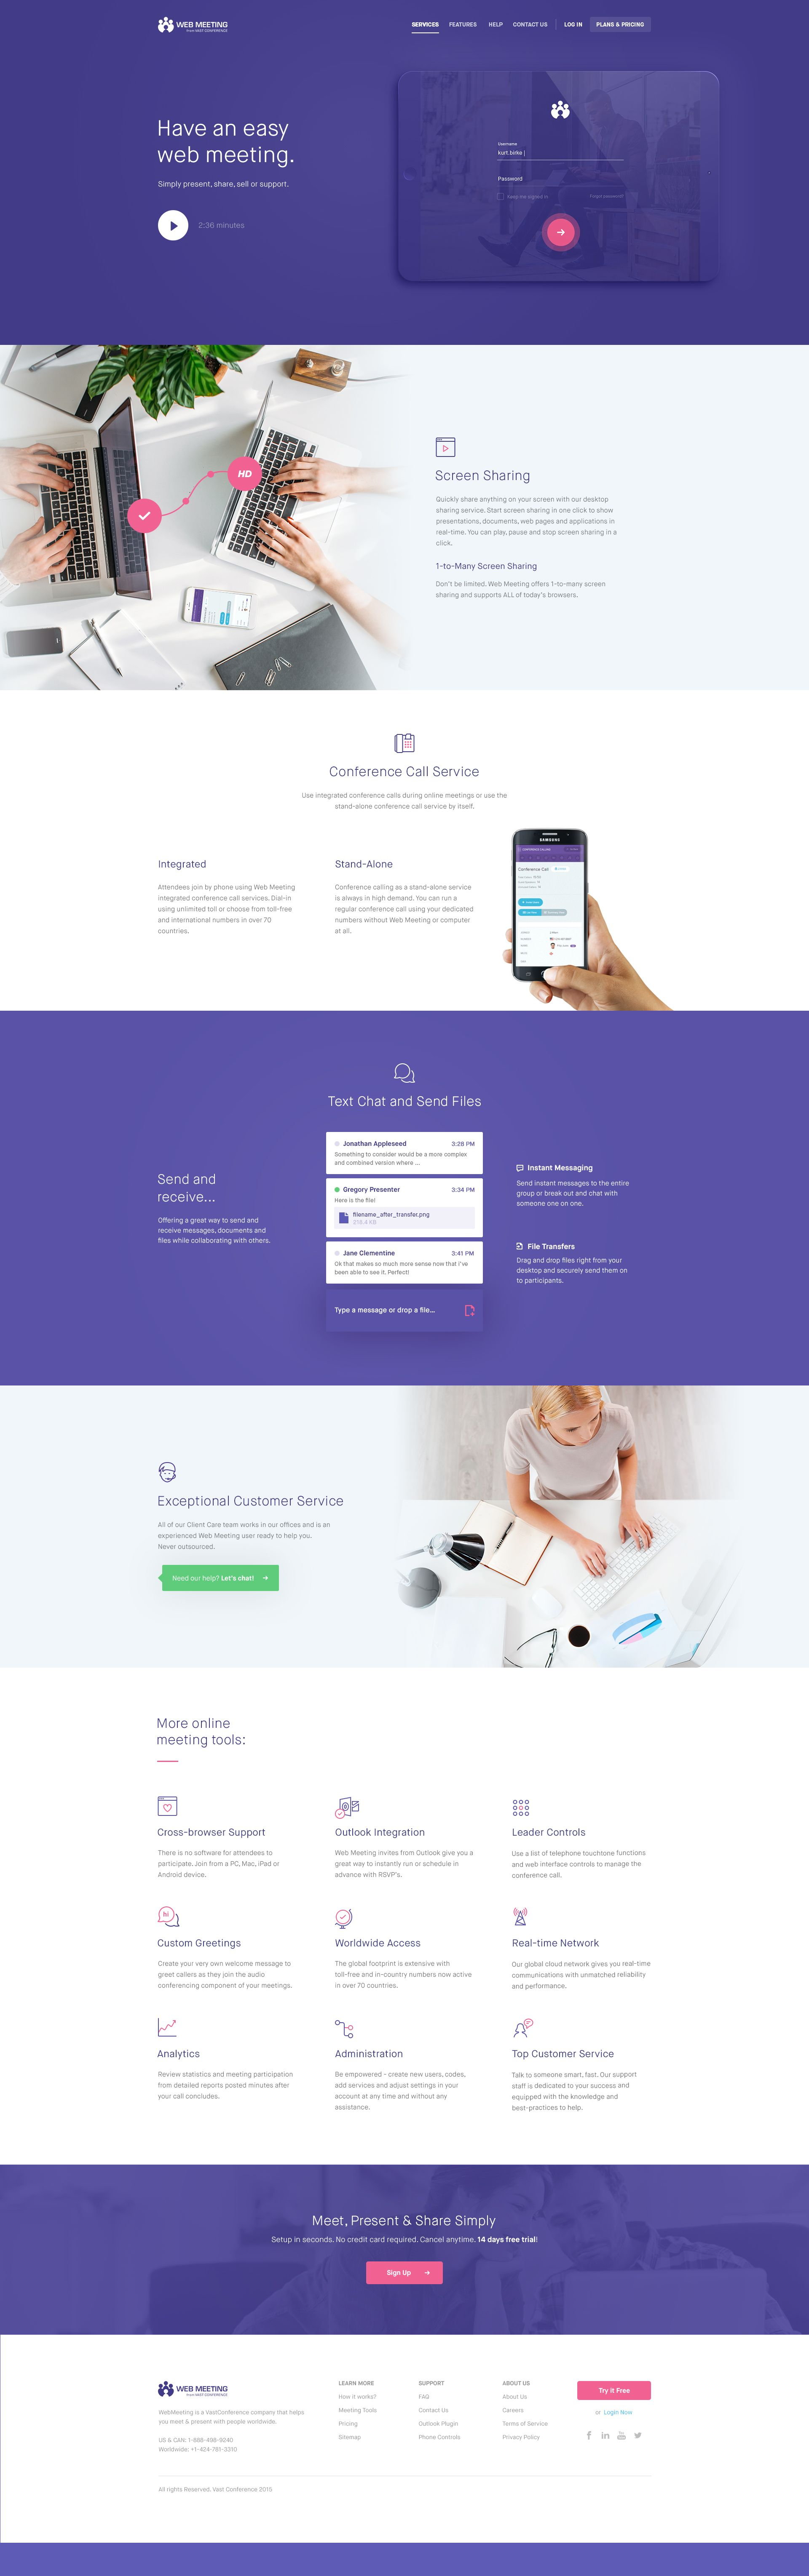 Dribbble - real-pixels-features-2.jpg by Balkan Brothers